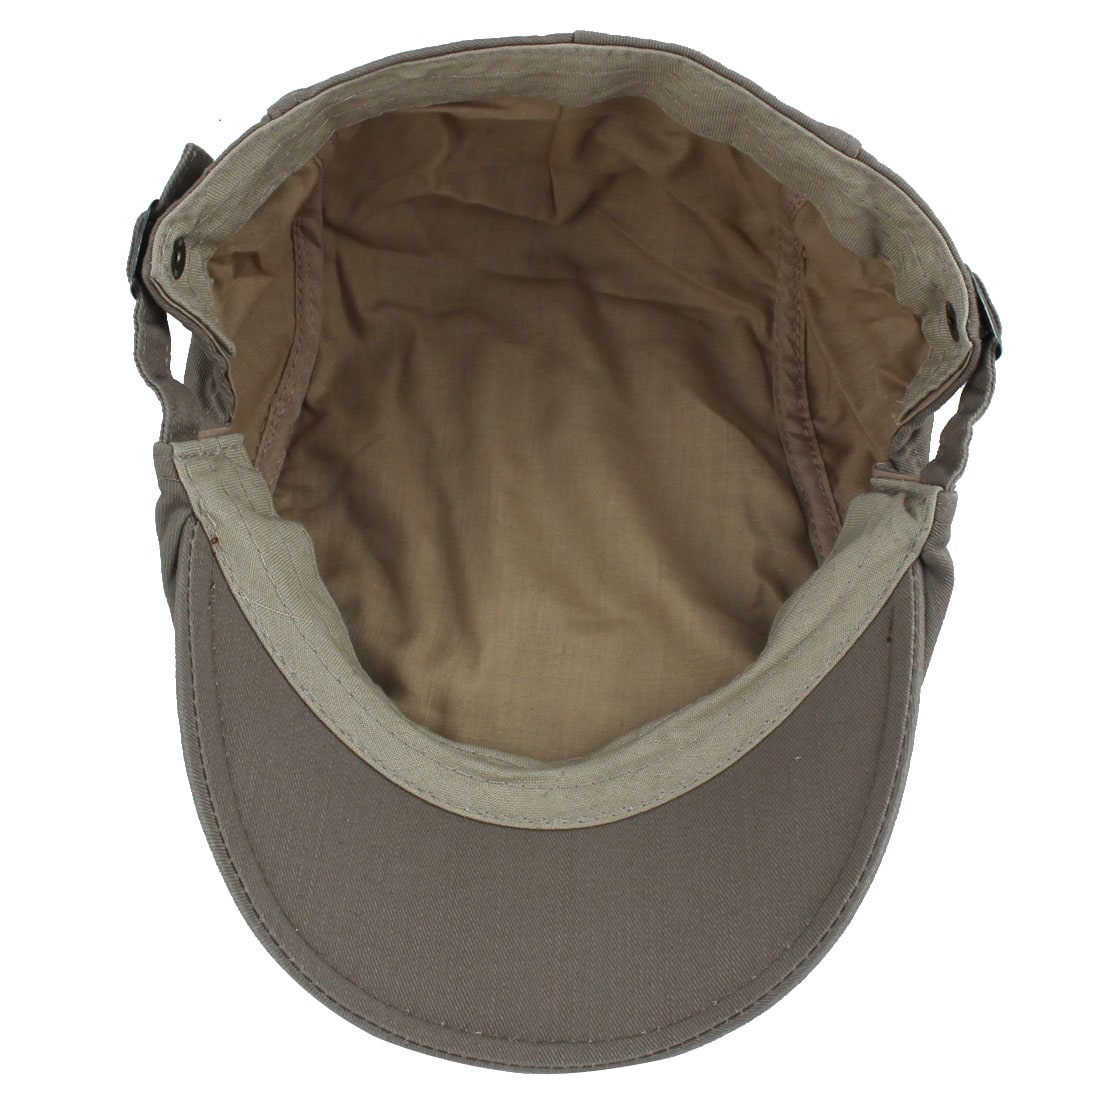 Shop Canvas Summer Newsboy Duckbill Ivy Cap Driving Flat Adjustable Beret  Hat Khaki - Free Shipping On Orders Over  45 - Overstock.com - 18362954 5e2994d9f5b7